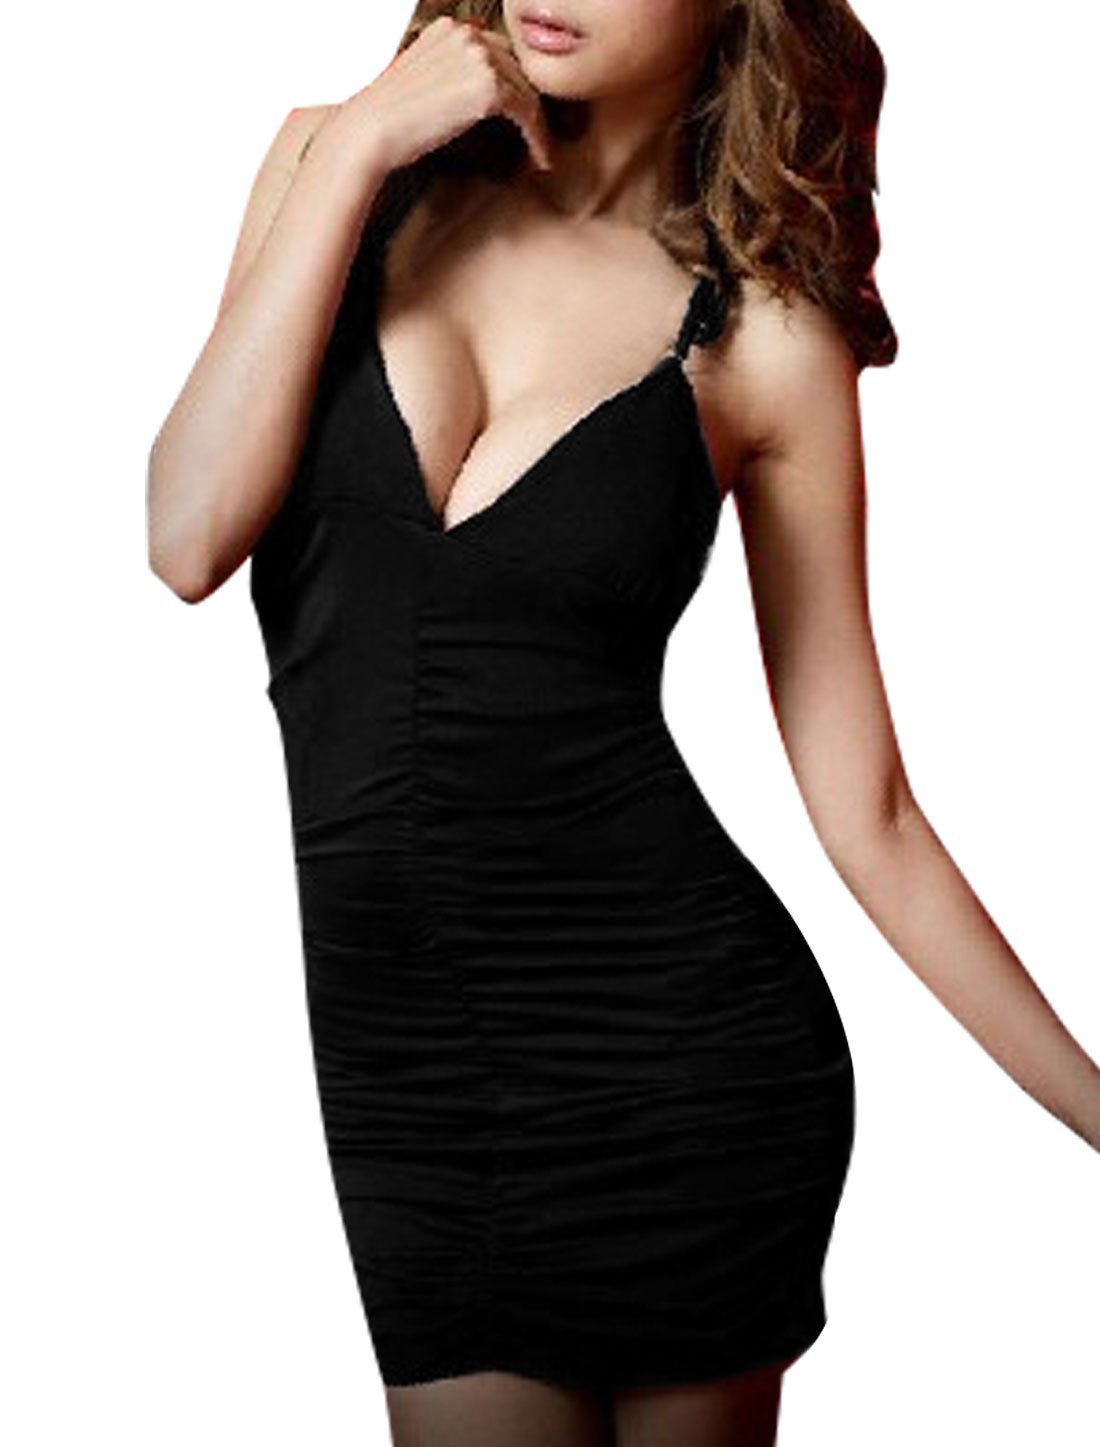 Women New Fashion Guipure Hollow Back Design Black Bodycon Mini Dress XL